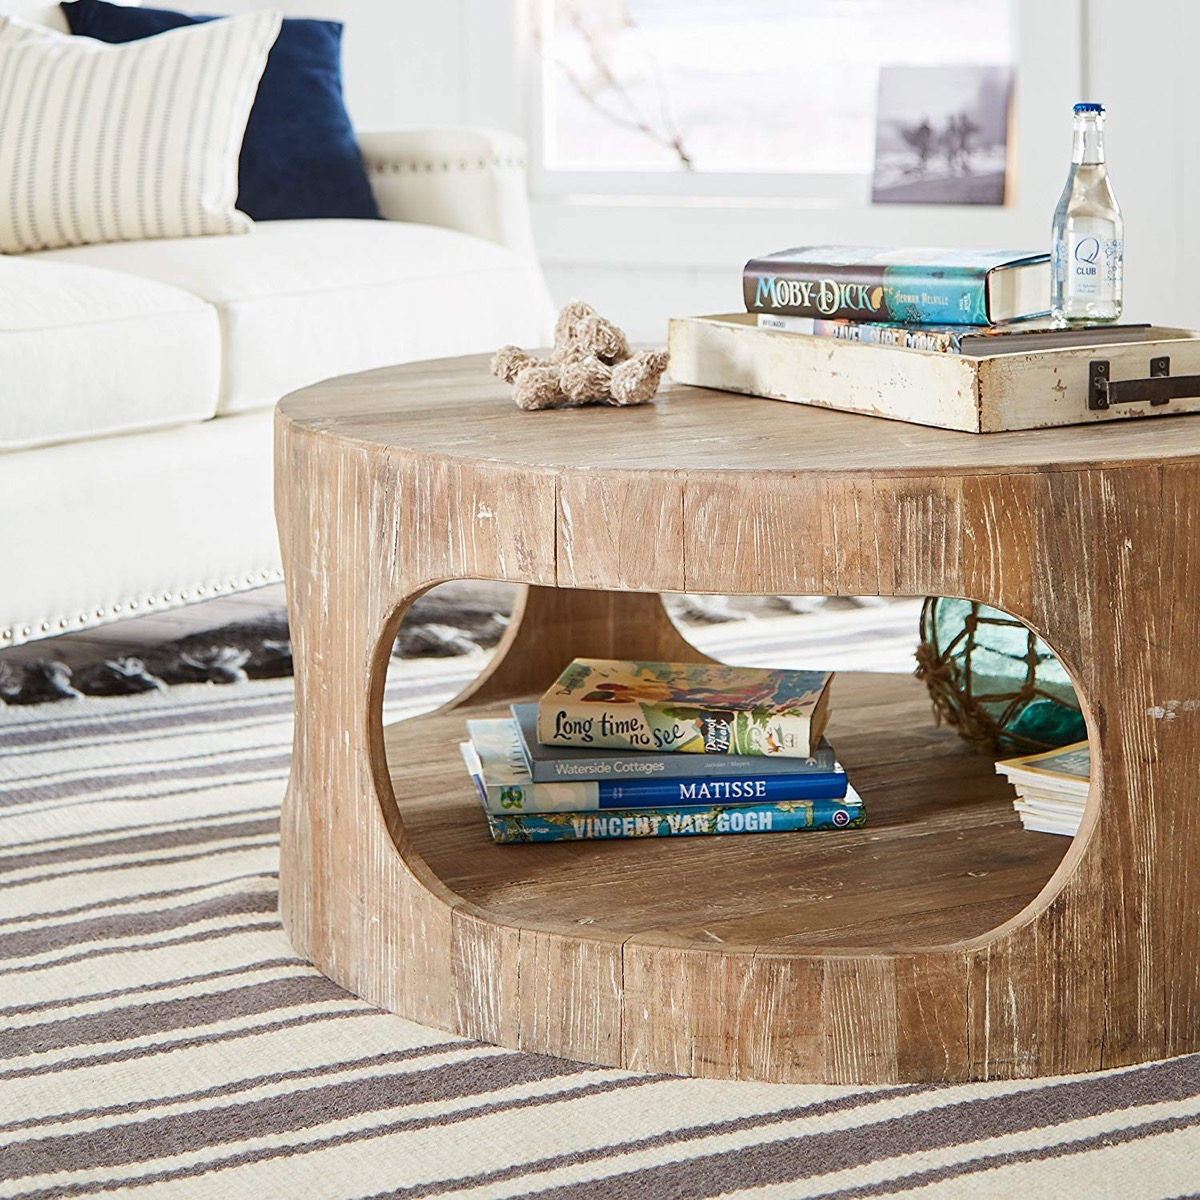 Rustic-Round-Distressed-Wood-Coffee-Table-With-Bottom-Shelf-Organic-Design-Earthy